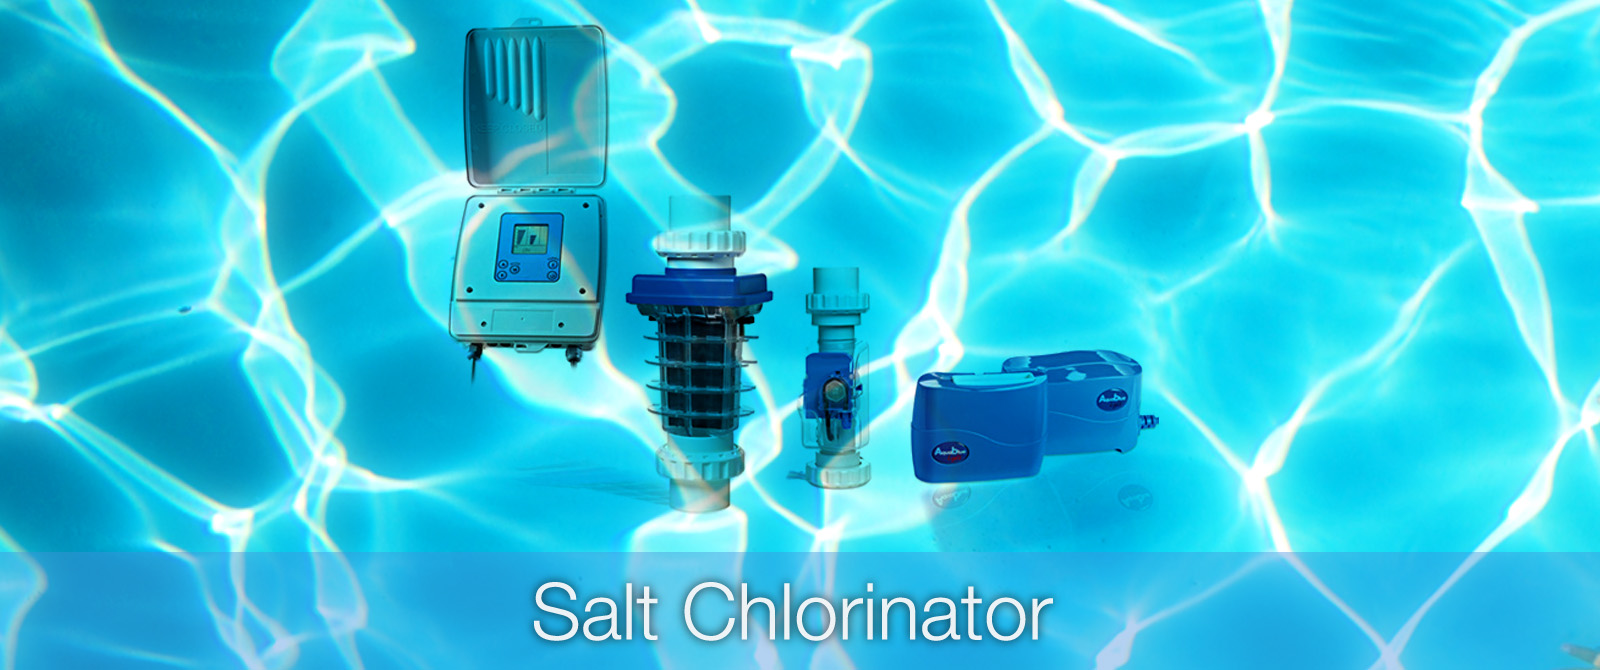 salt chlorinator